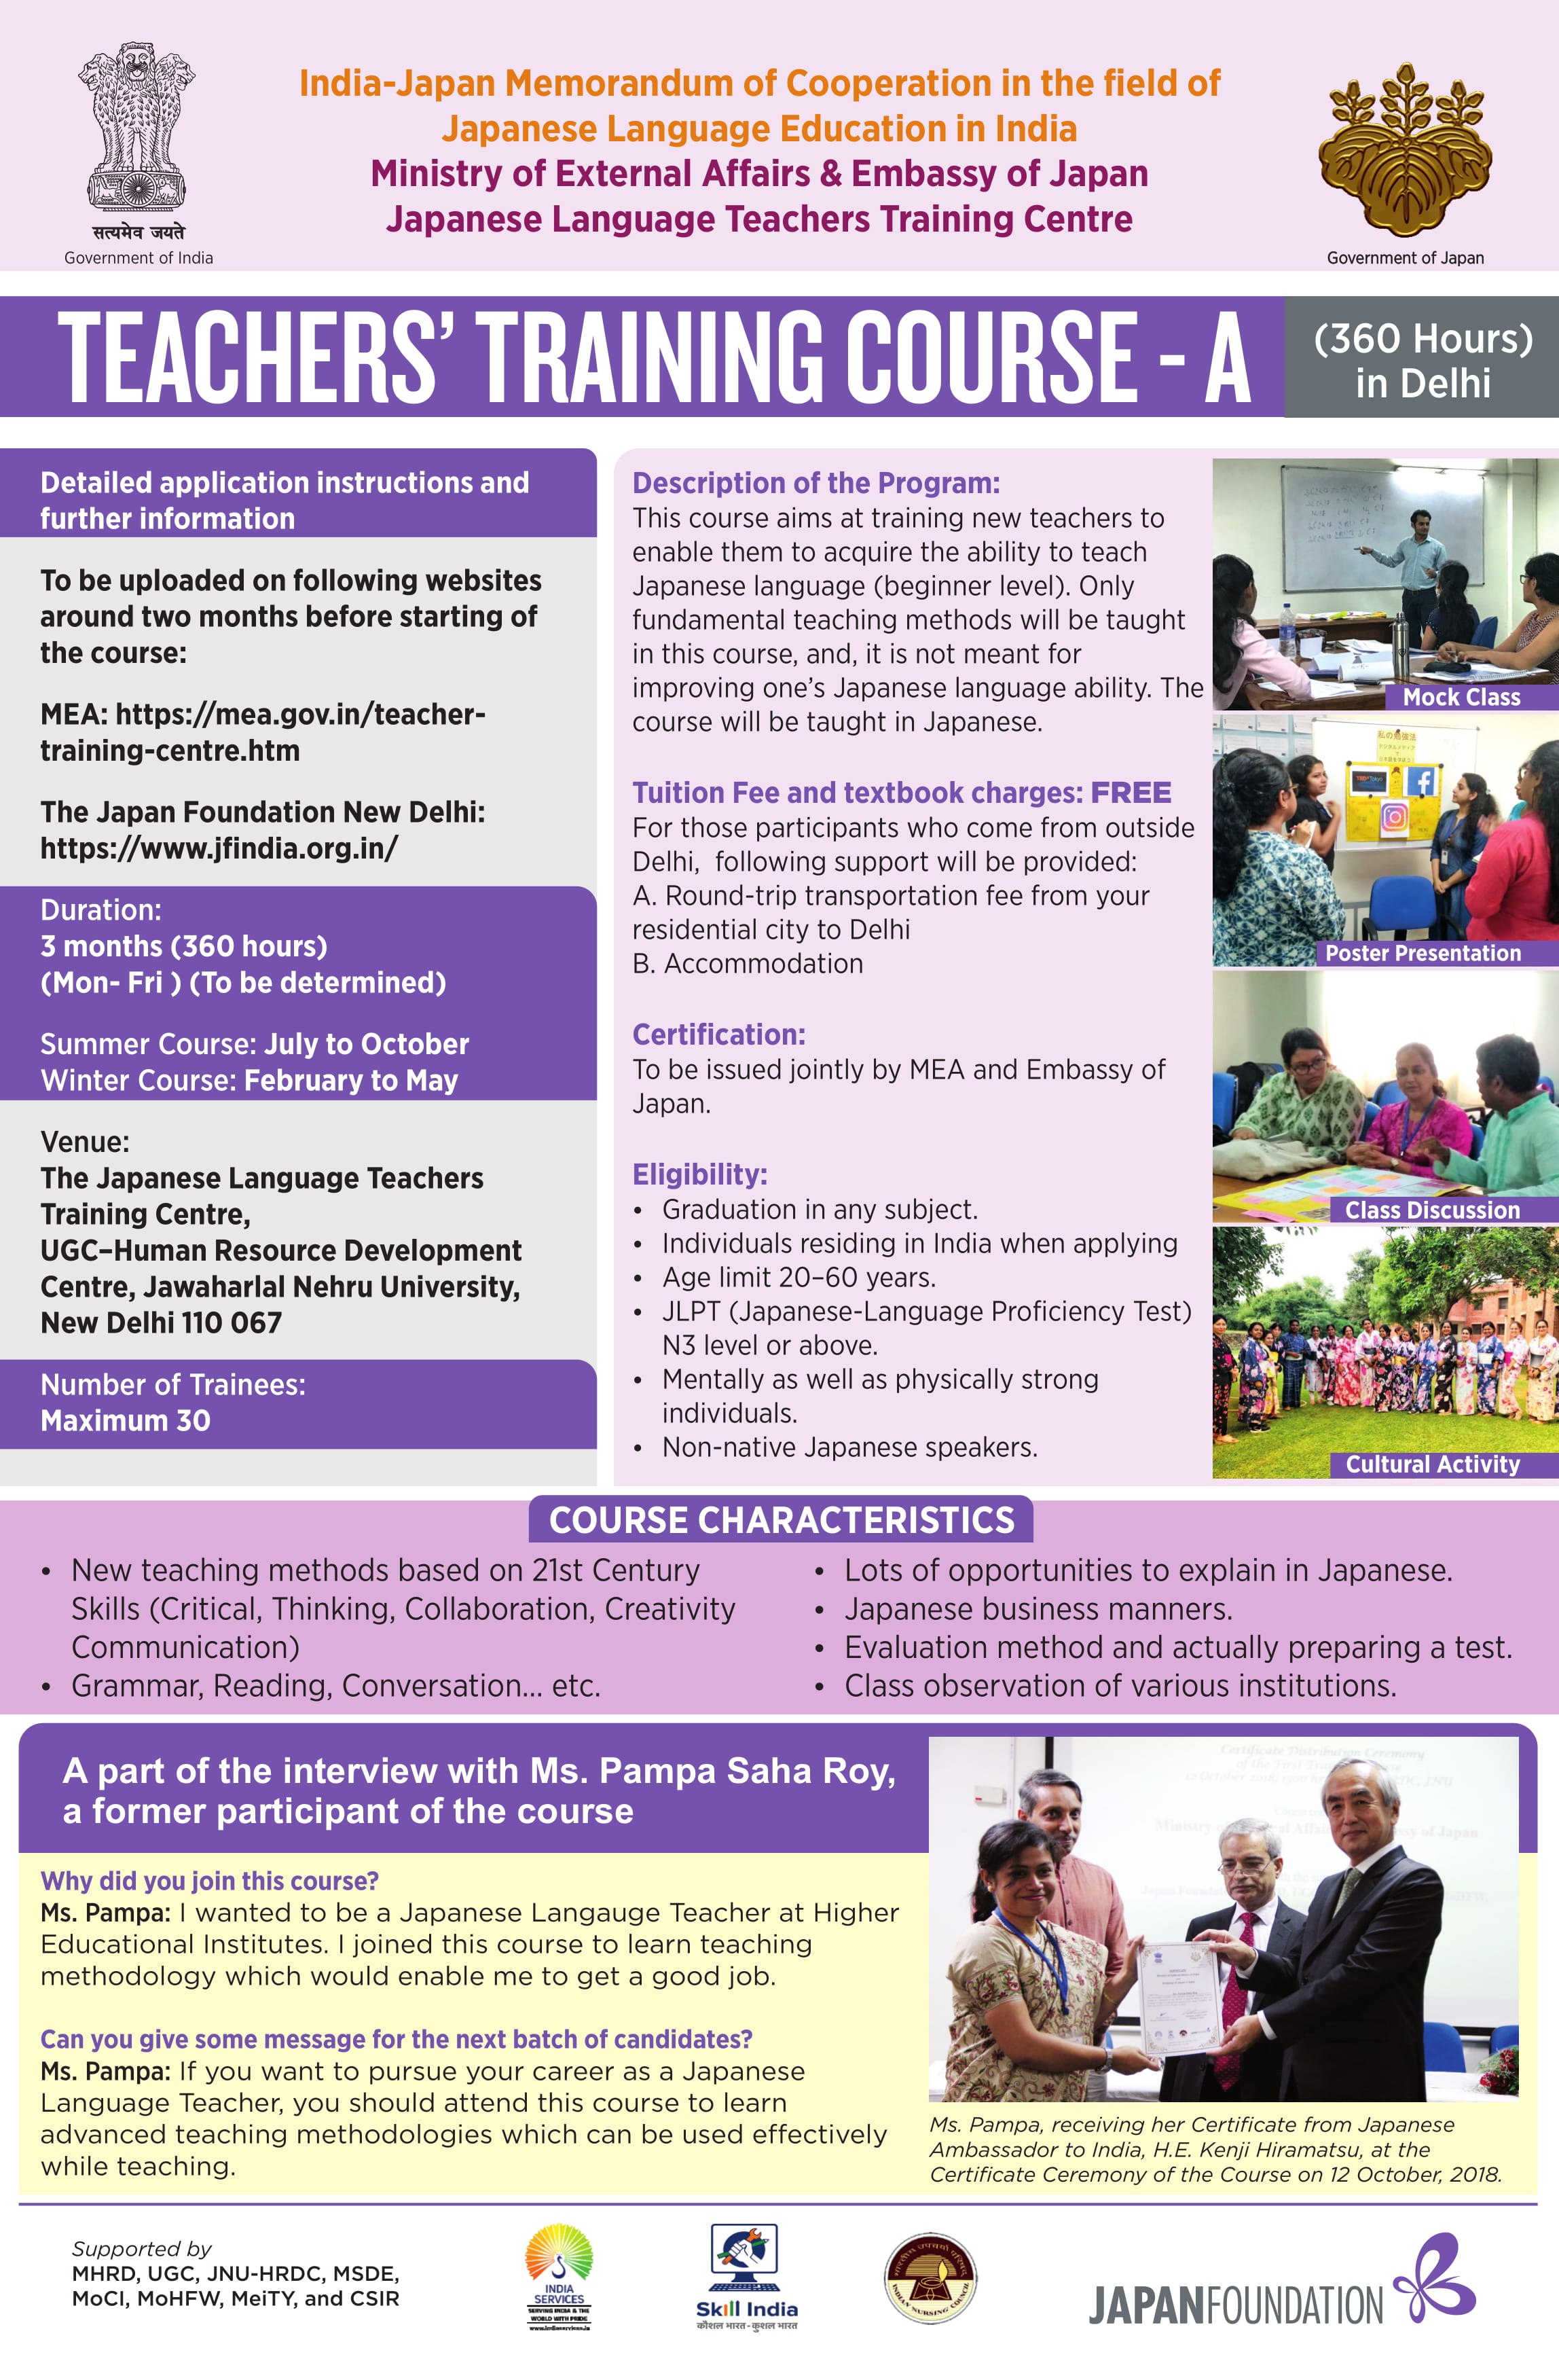 Application for Teachers' Training Course A (360 Hours) in New Delhi is open!